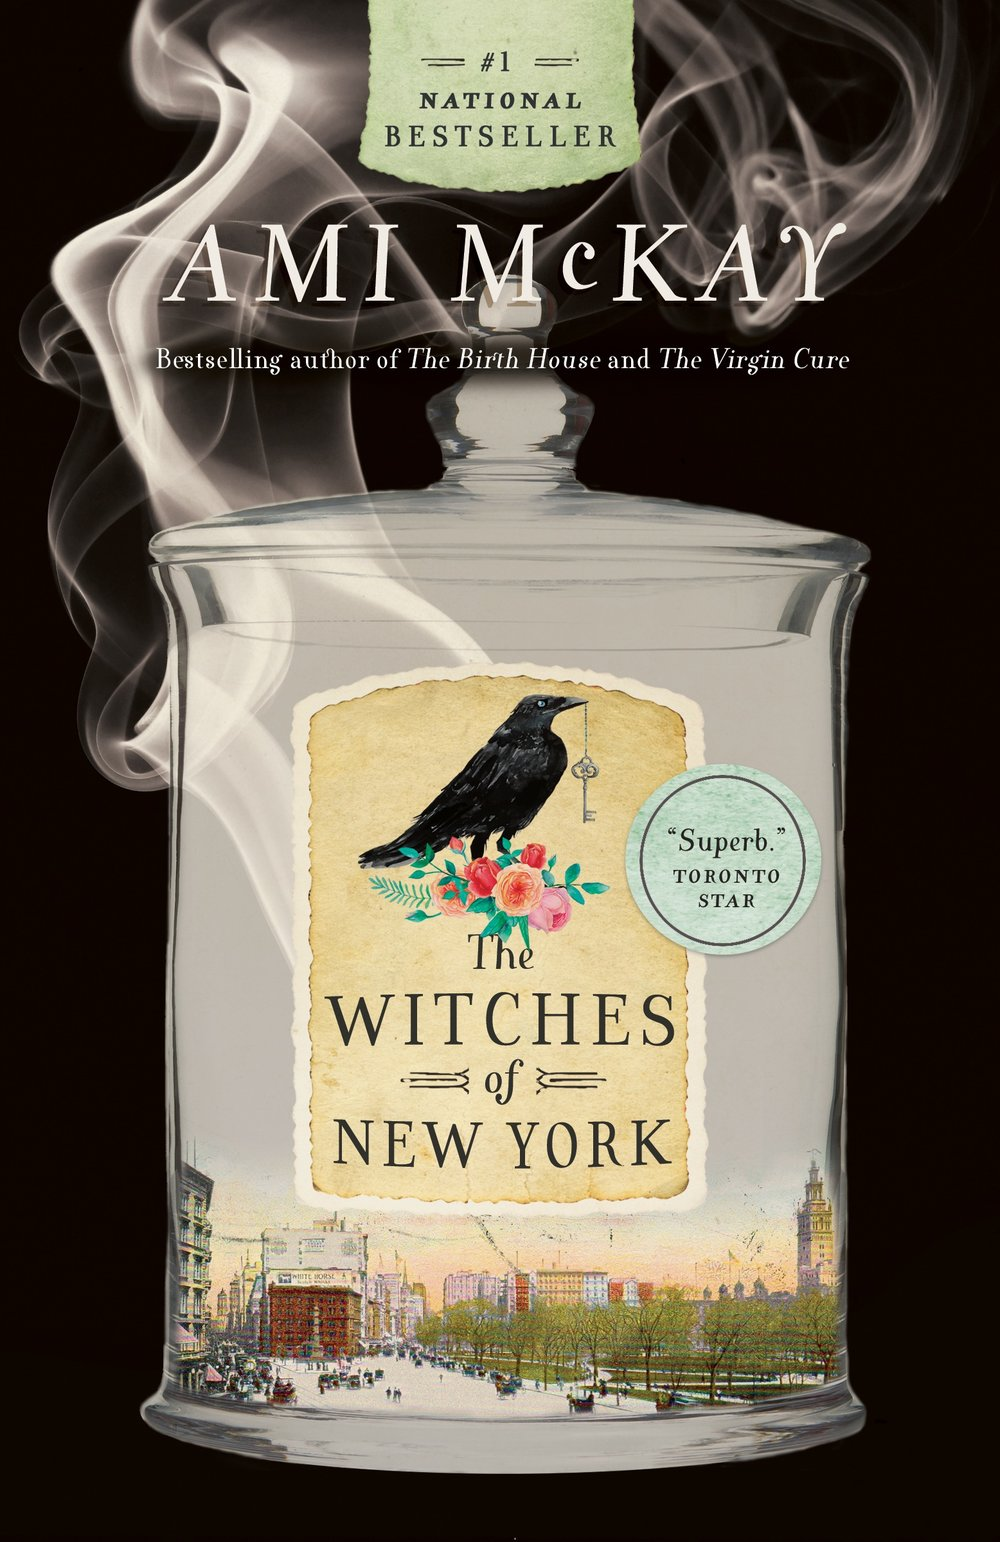 The Witches of New York by Ami McKay